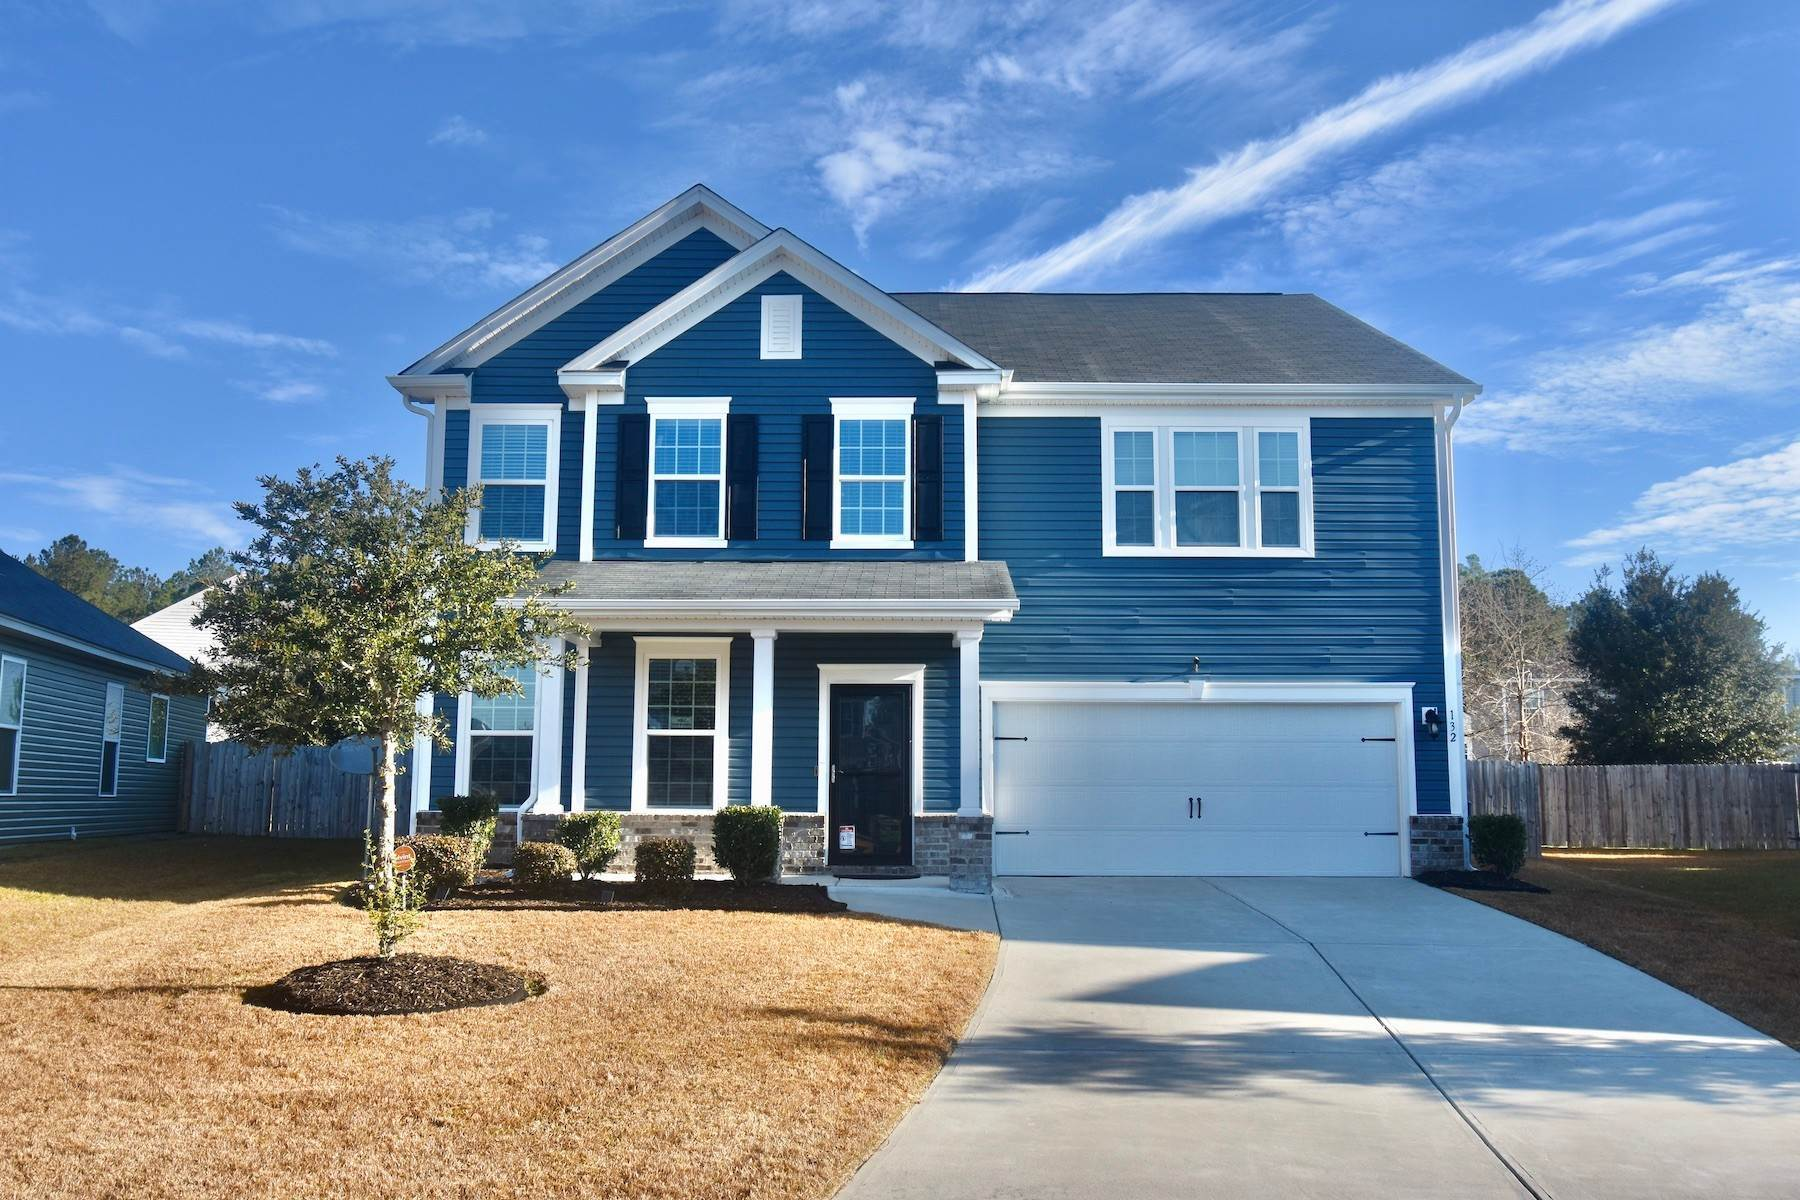 Property for Sale at Spacious Newer Construction in Pooler 132 Tanzania Trail Pooler, Georgia 31322 United States